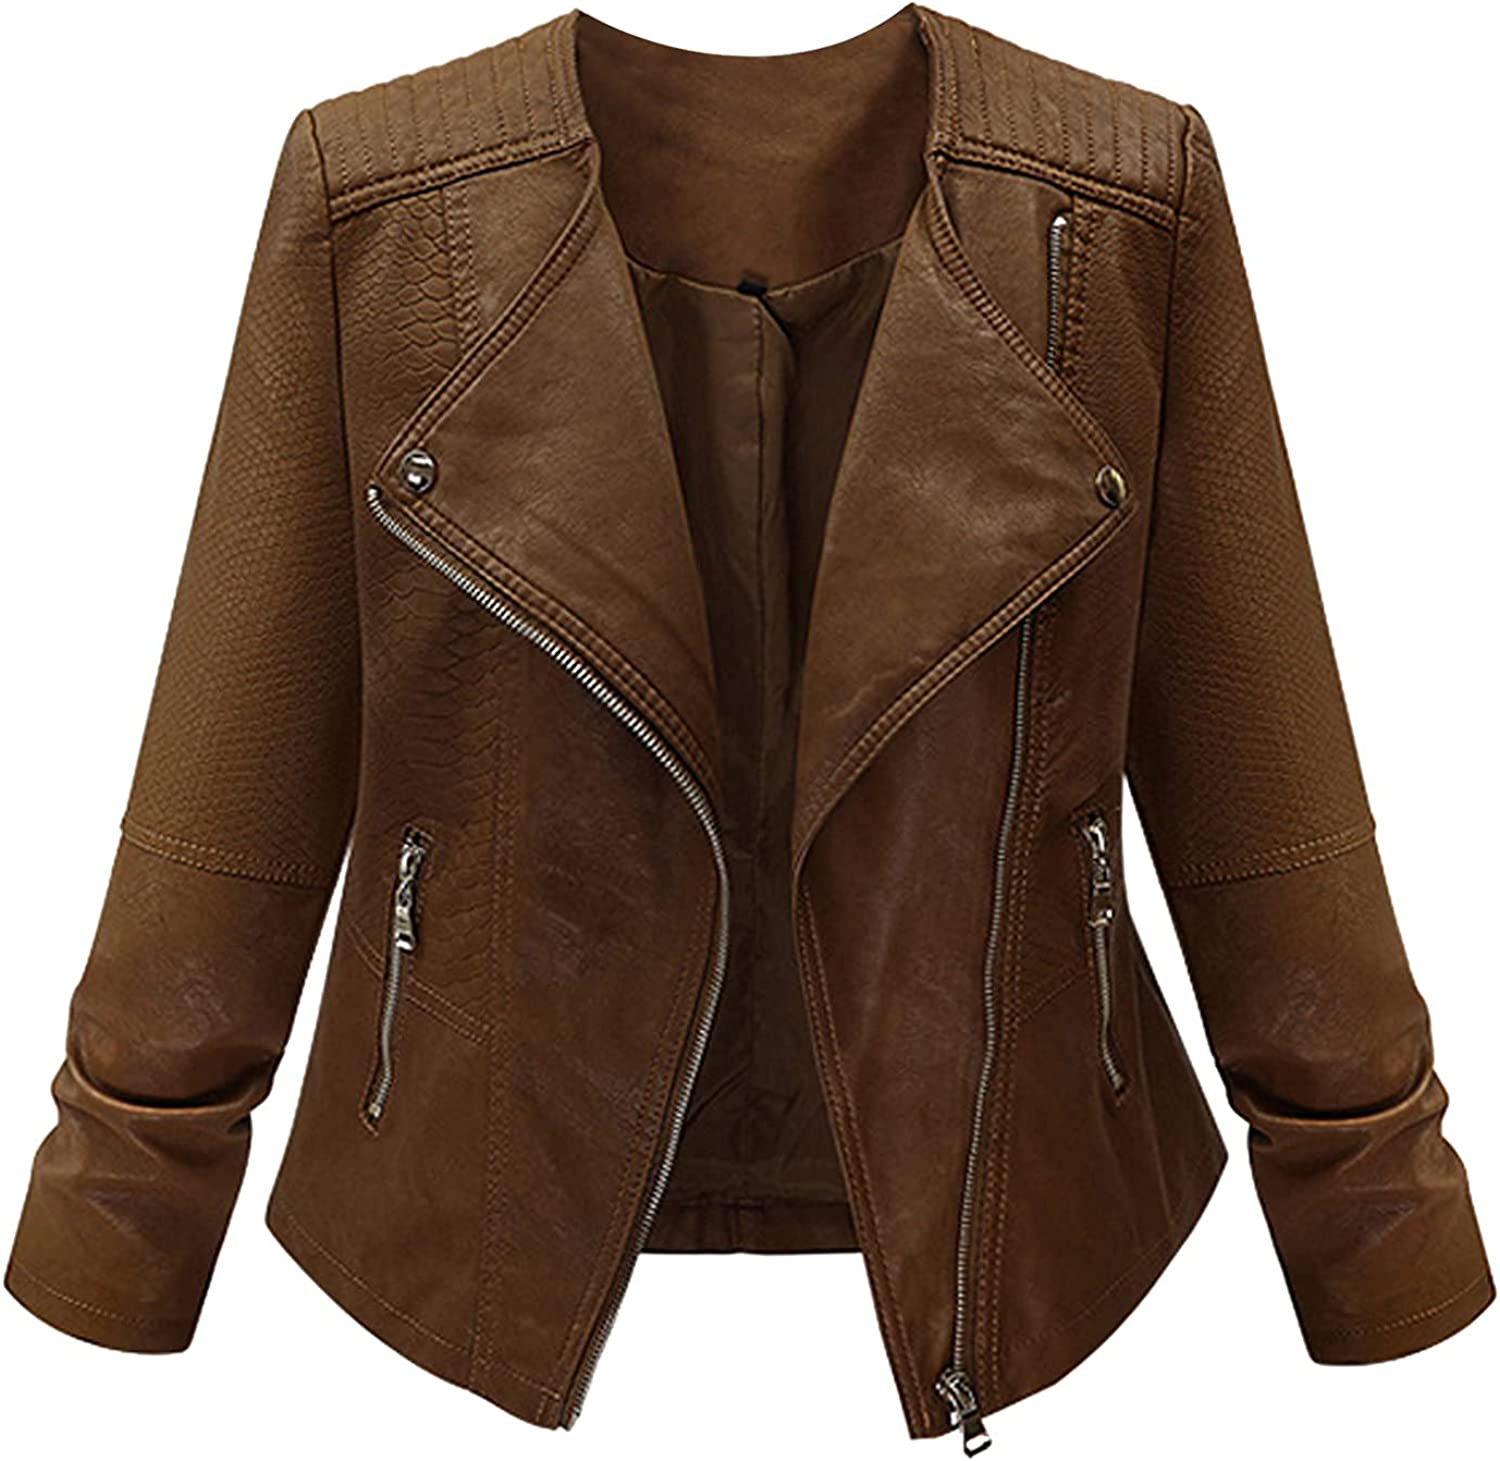 Jackets for Women Fashion Plus Large Size Selling rankings Leather Zipper Manufacturer regenerated product